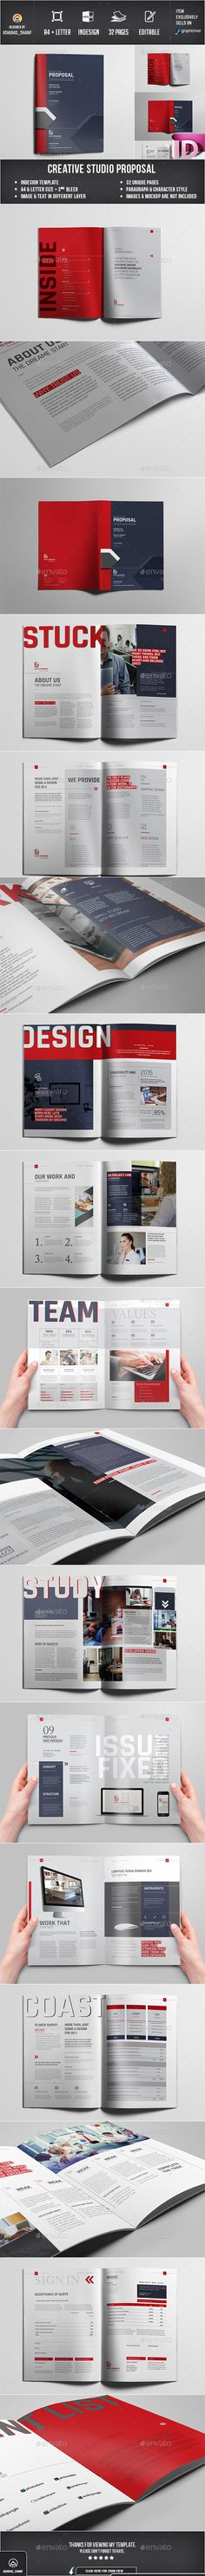 Proposal by ashuras_sharif This Proposal Templates are 32 Pages, Two Different Sizes A4 and US Letter. All units and text are Layered to customize Easily.Cou